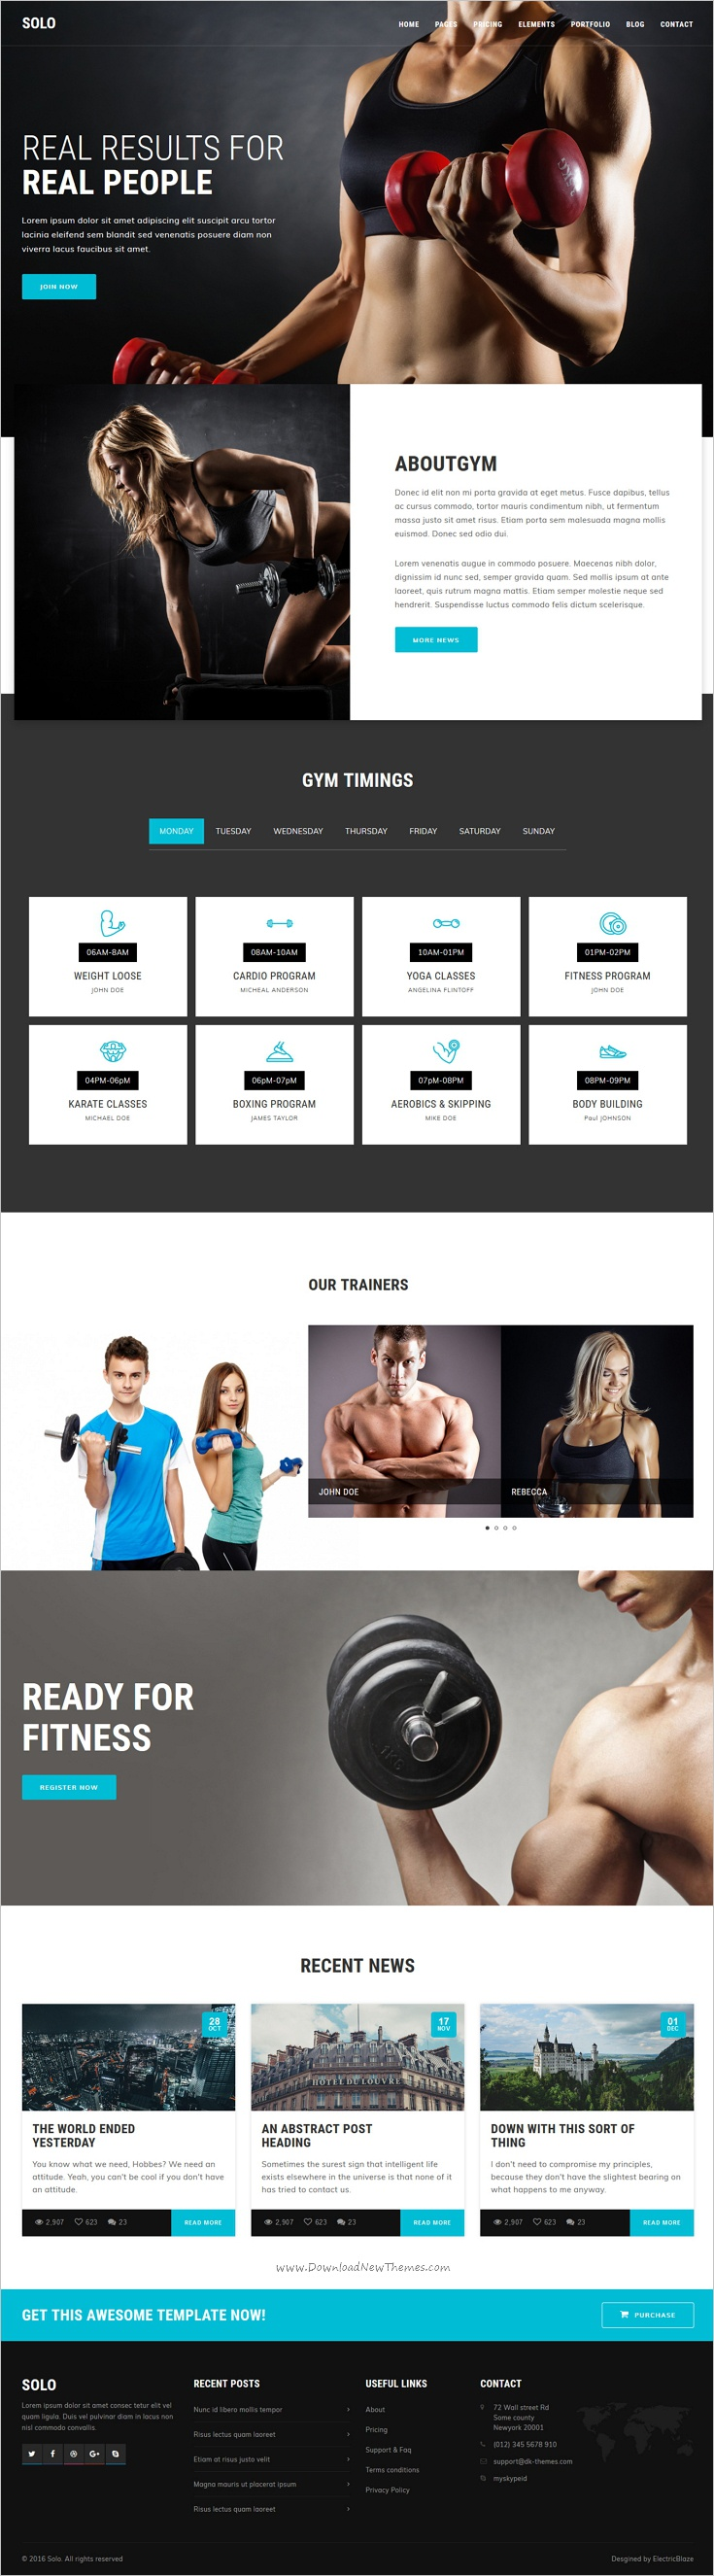 Solo - 103+ Pages HTML Bootstrap Template | Gym fitness, Soloing and ...